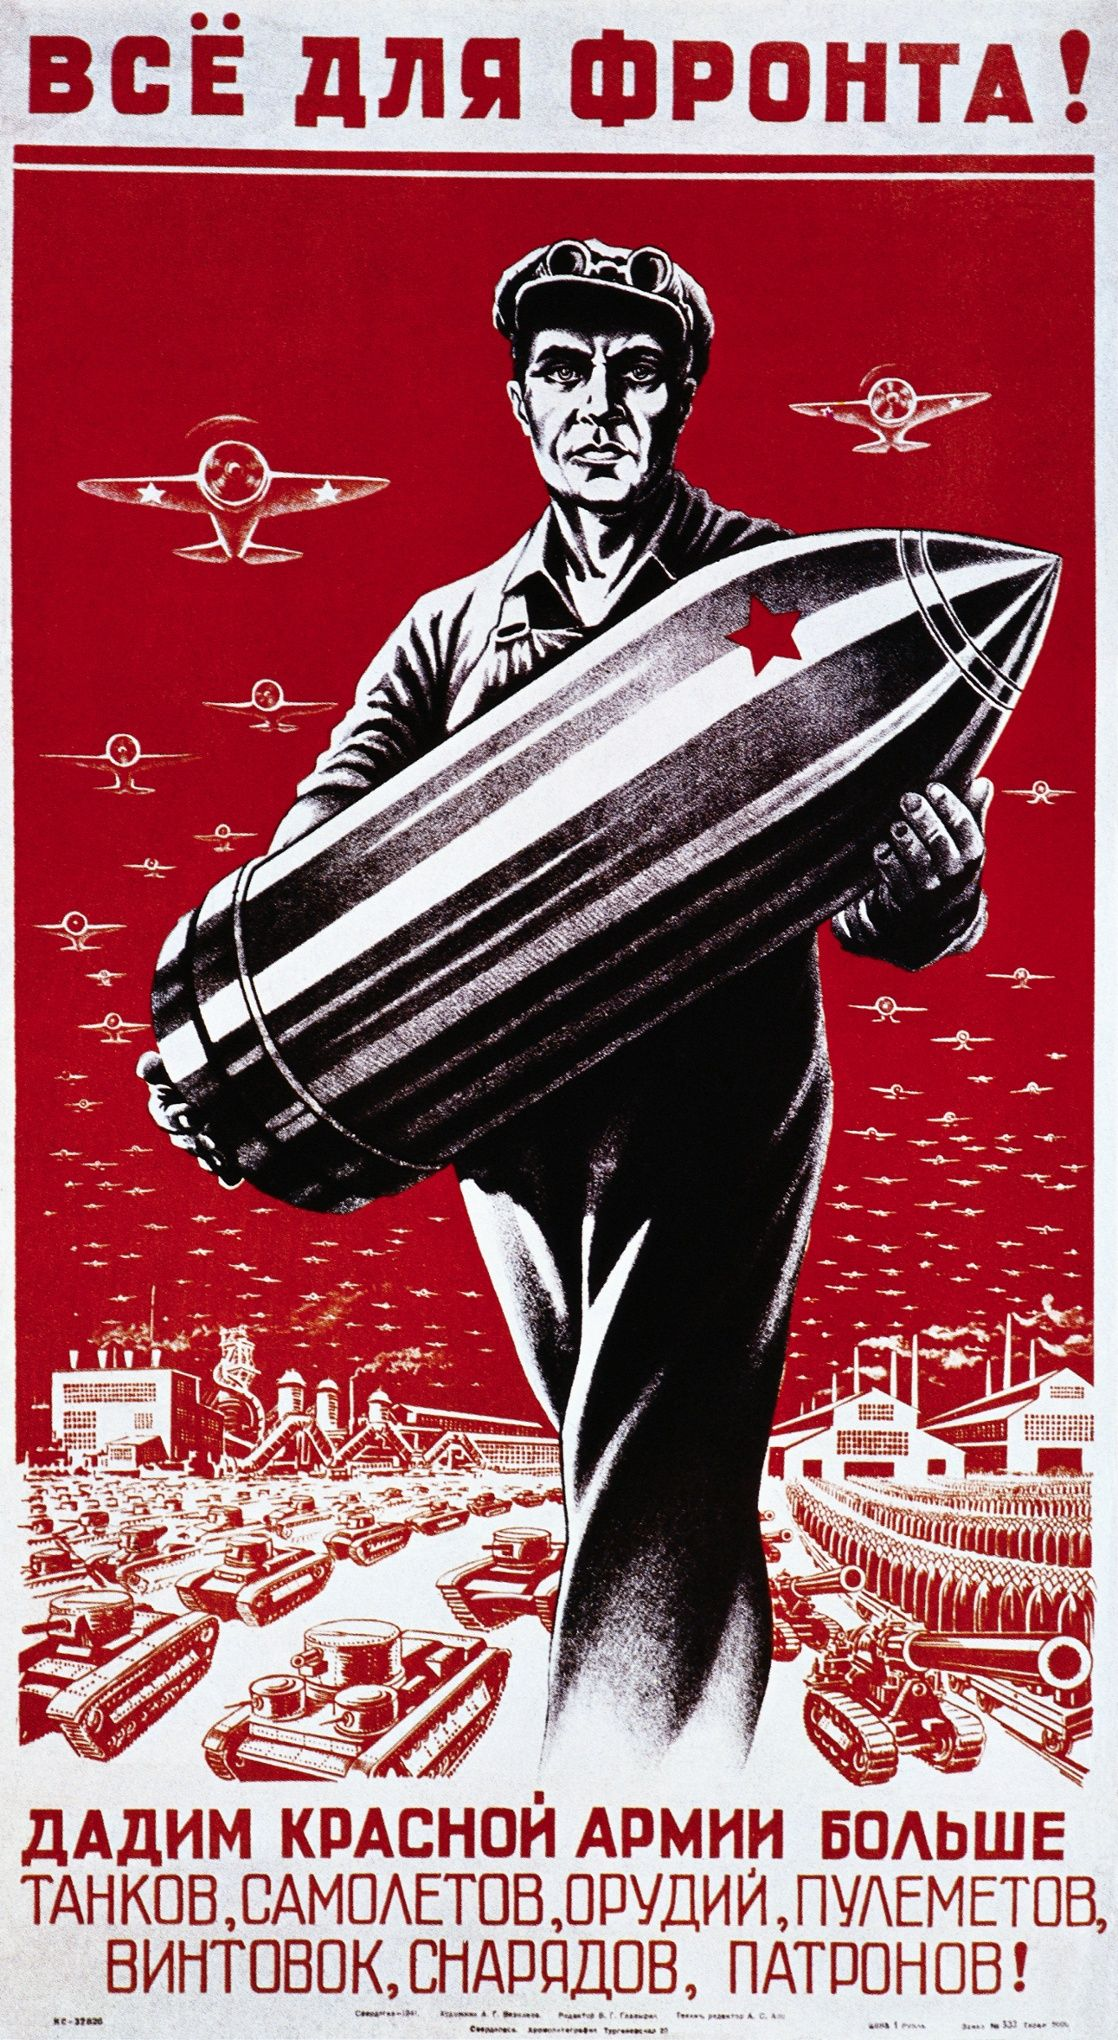 seven decades of soviet propaganda in pictures agitprop